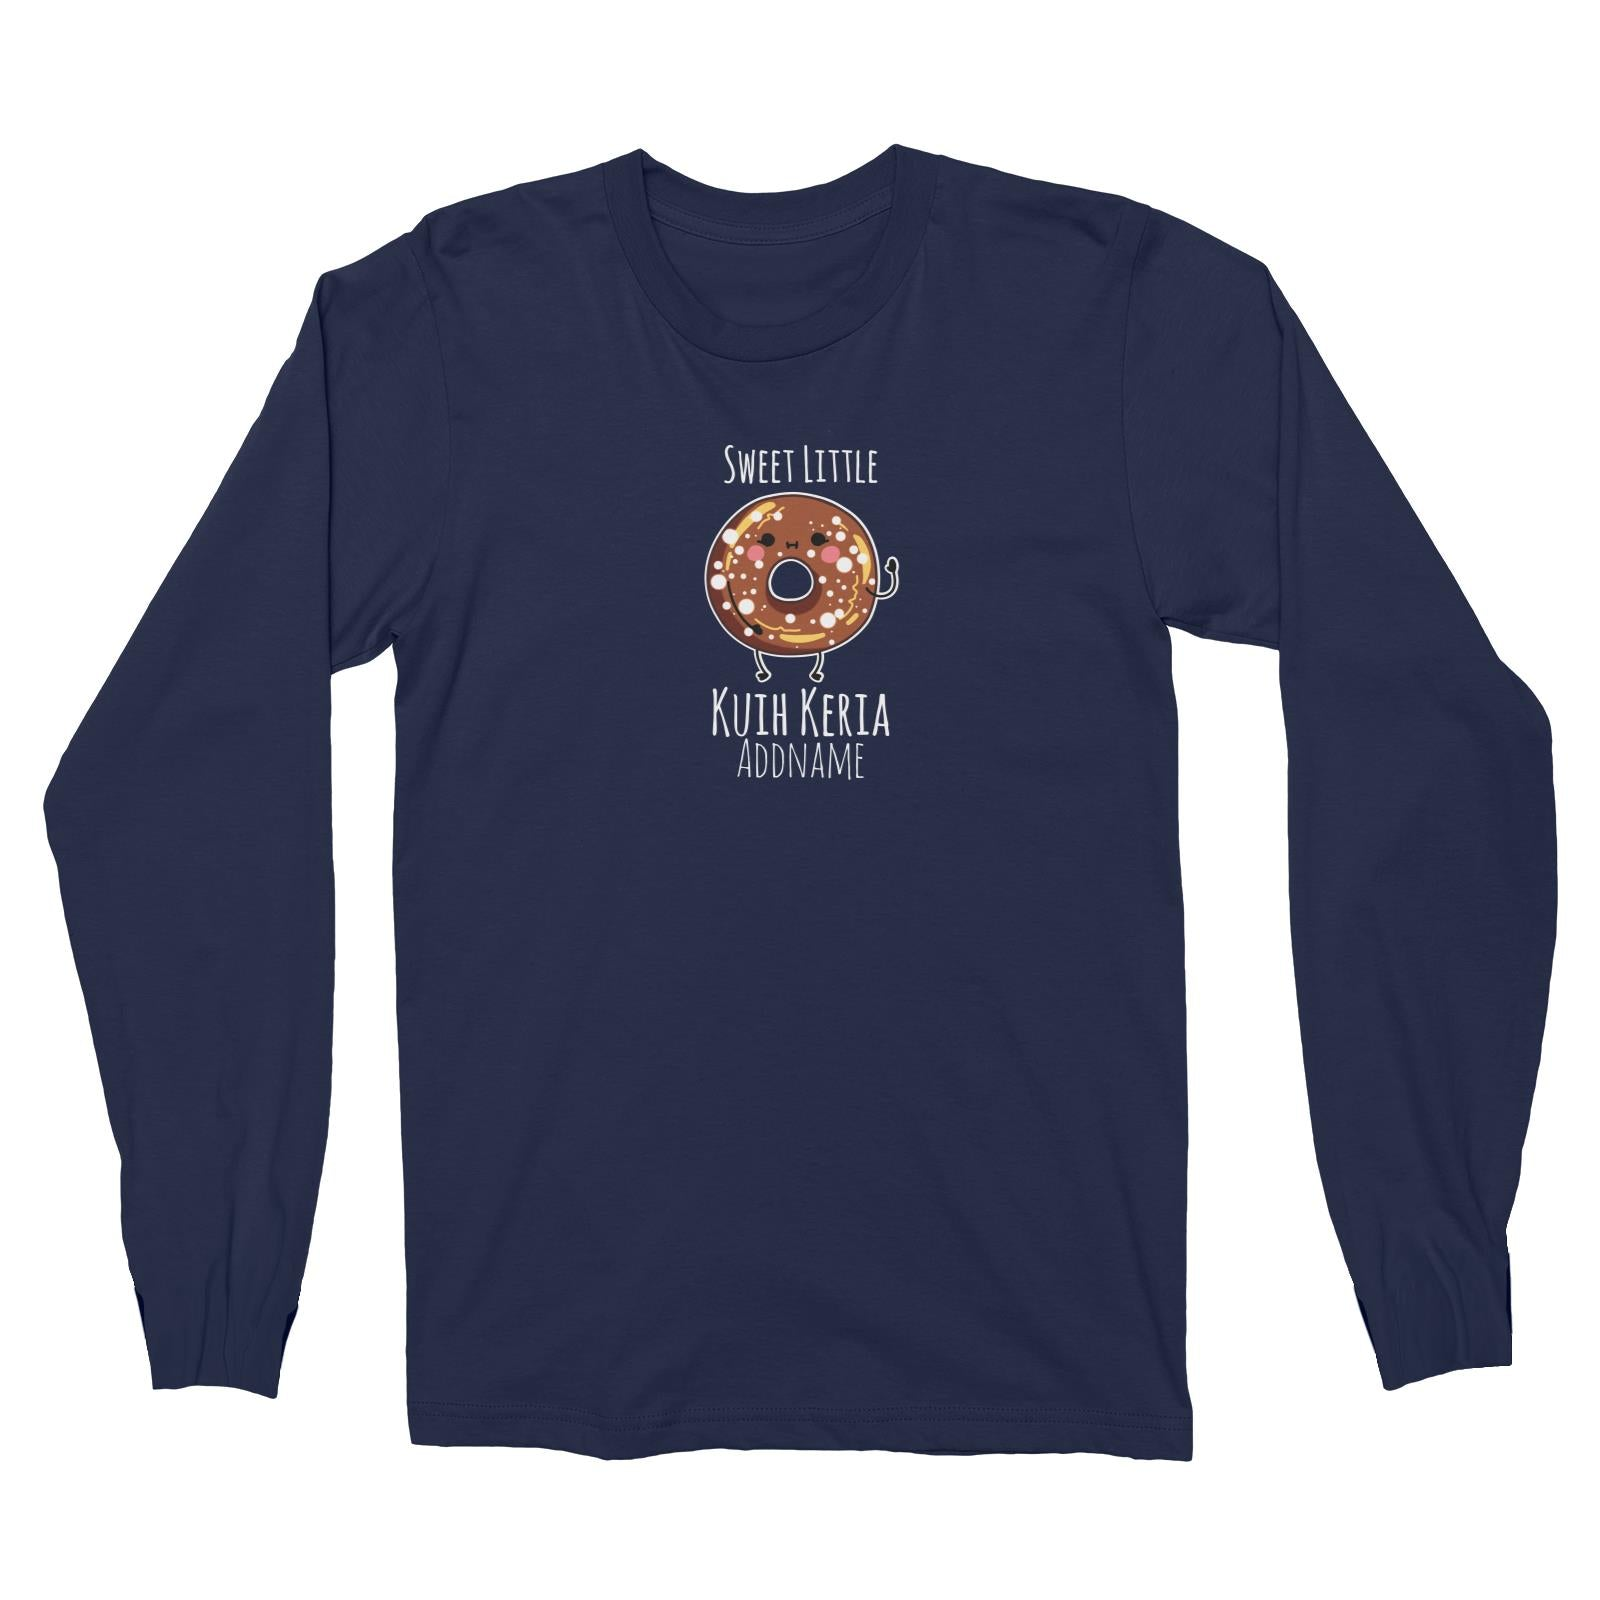 Raya Kuih Sweet 2 Sweet Little Kuih Keria Addname Long Sleeve Unisex T-Shirt